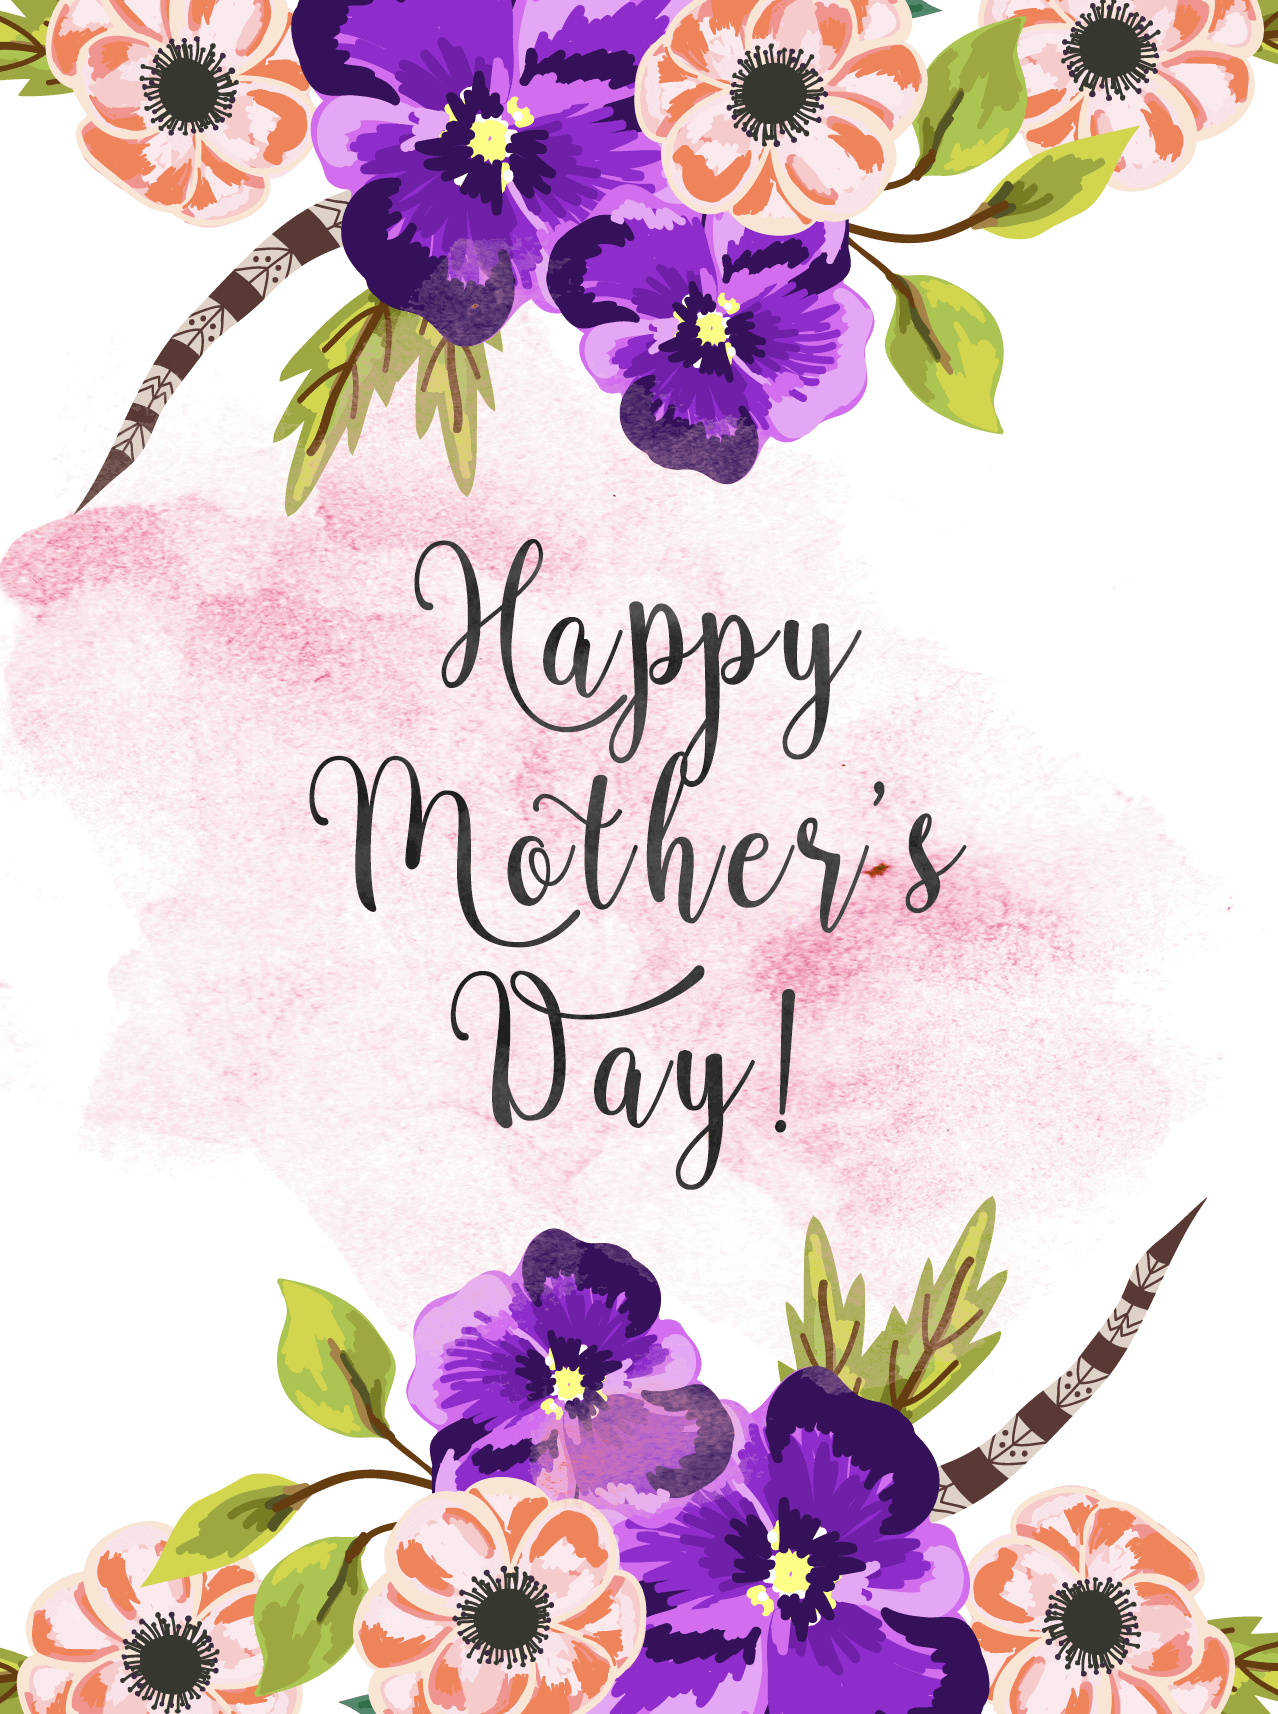 Mothers Day Greetings Png - Free Printable Mother's Day Cards